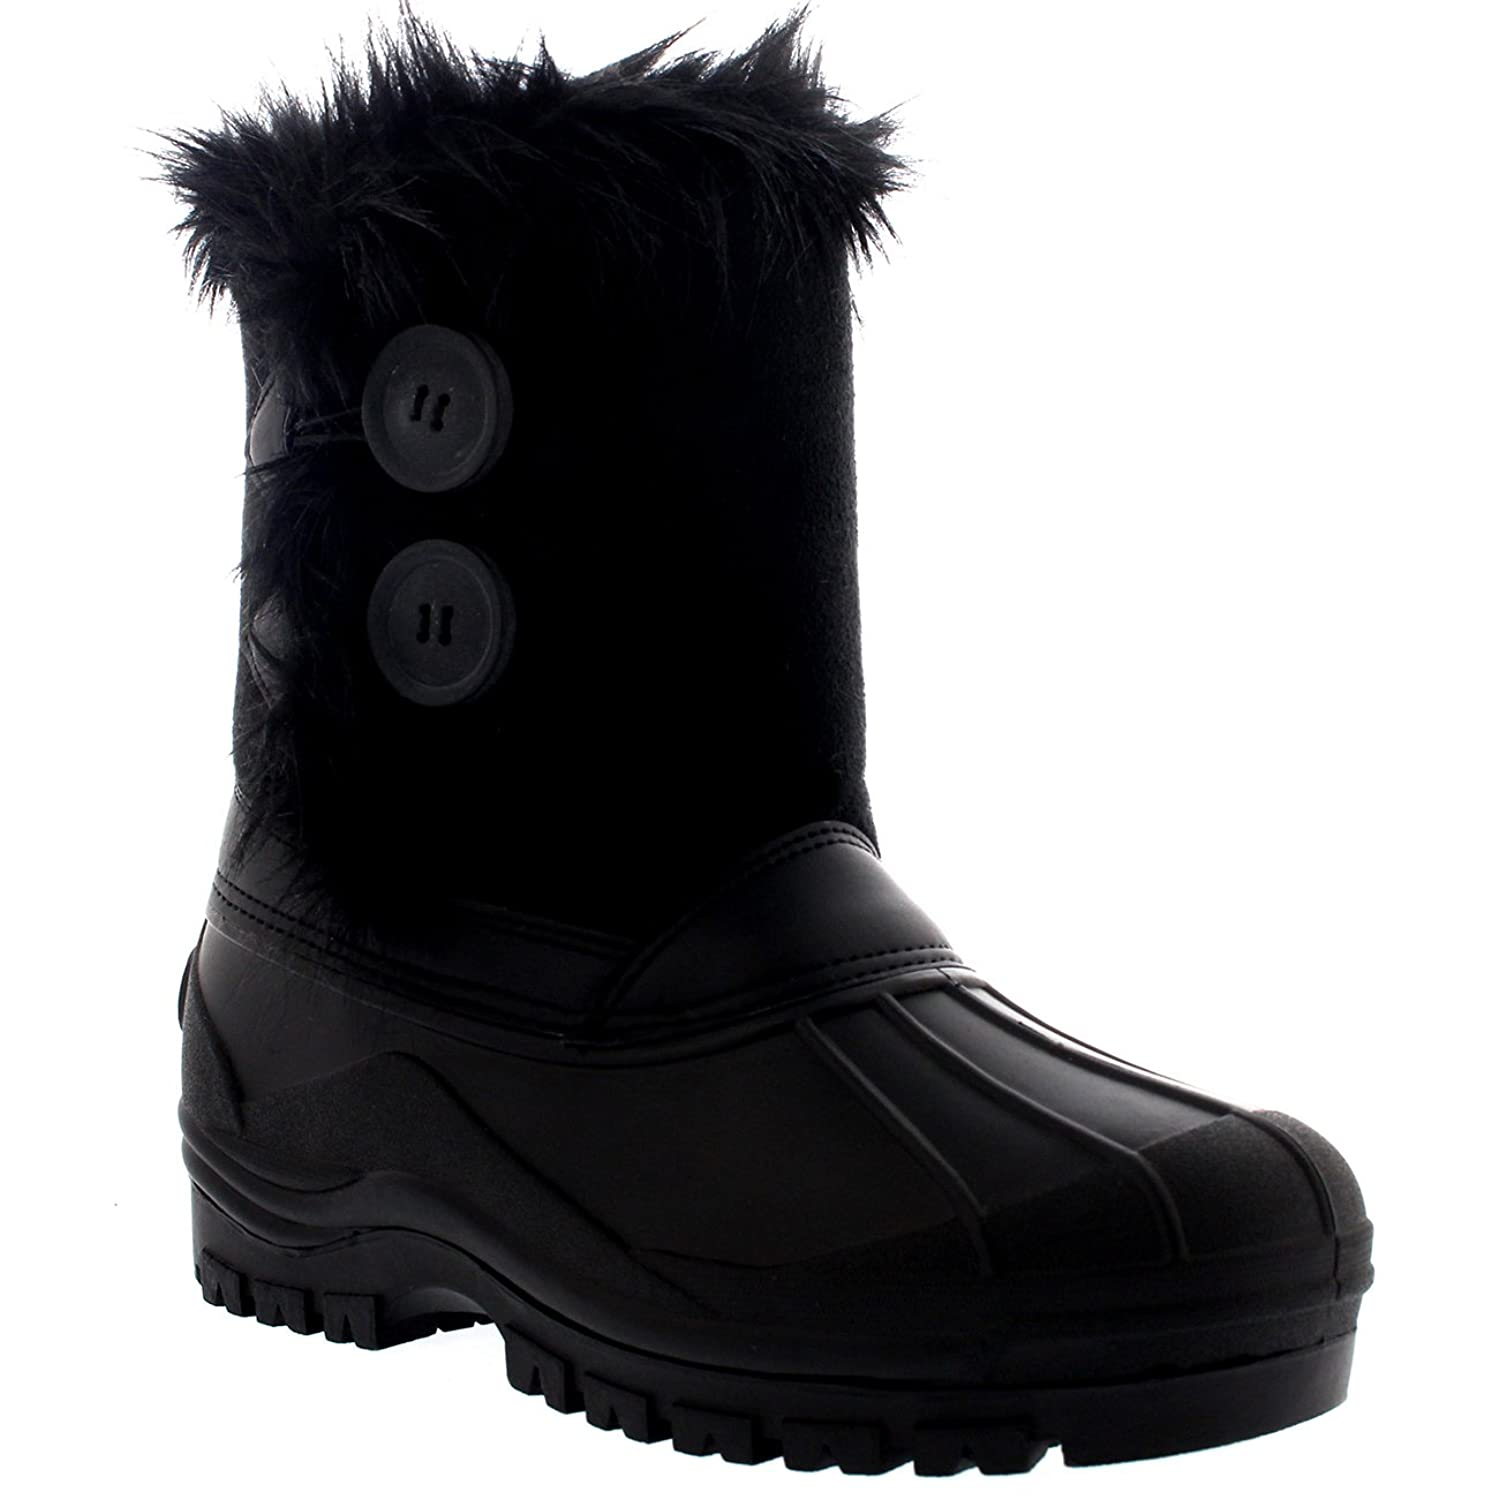 Polarr Womens Twin Button Duck Muck Rain Winter Mid Calf Boots:  Amazon.co.uk: Shoes & Bags